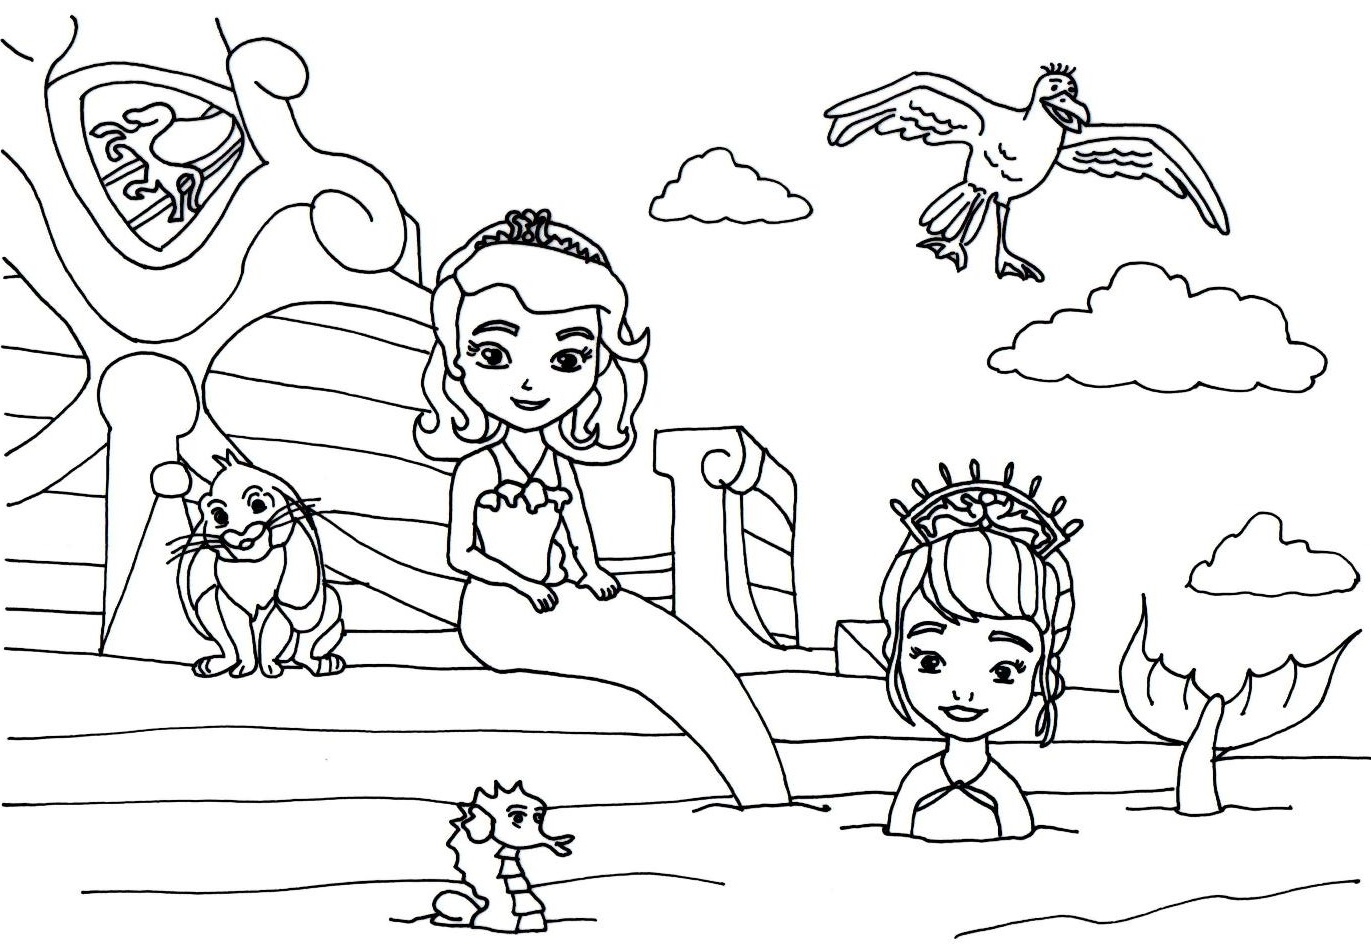 sofia the first coloring pages floating palace sofia the first